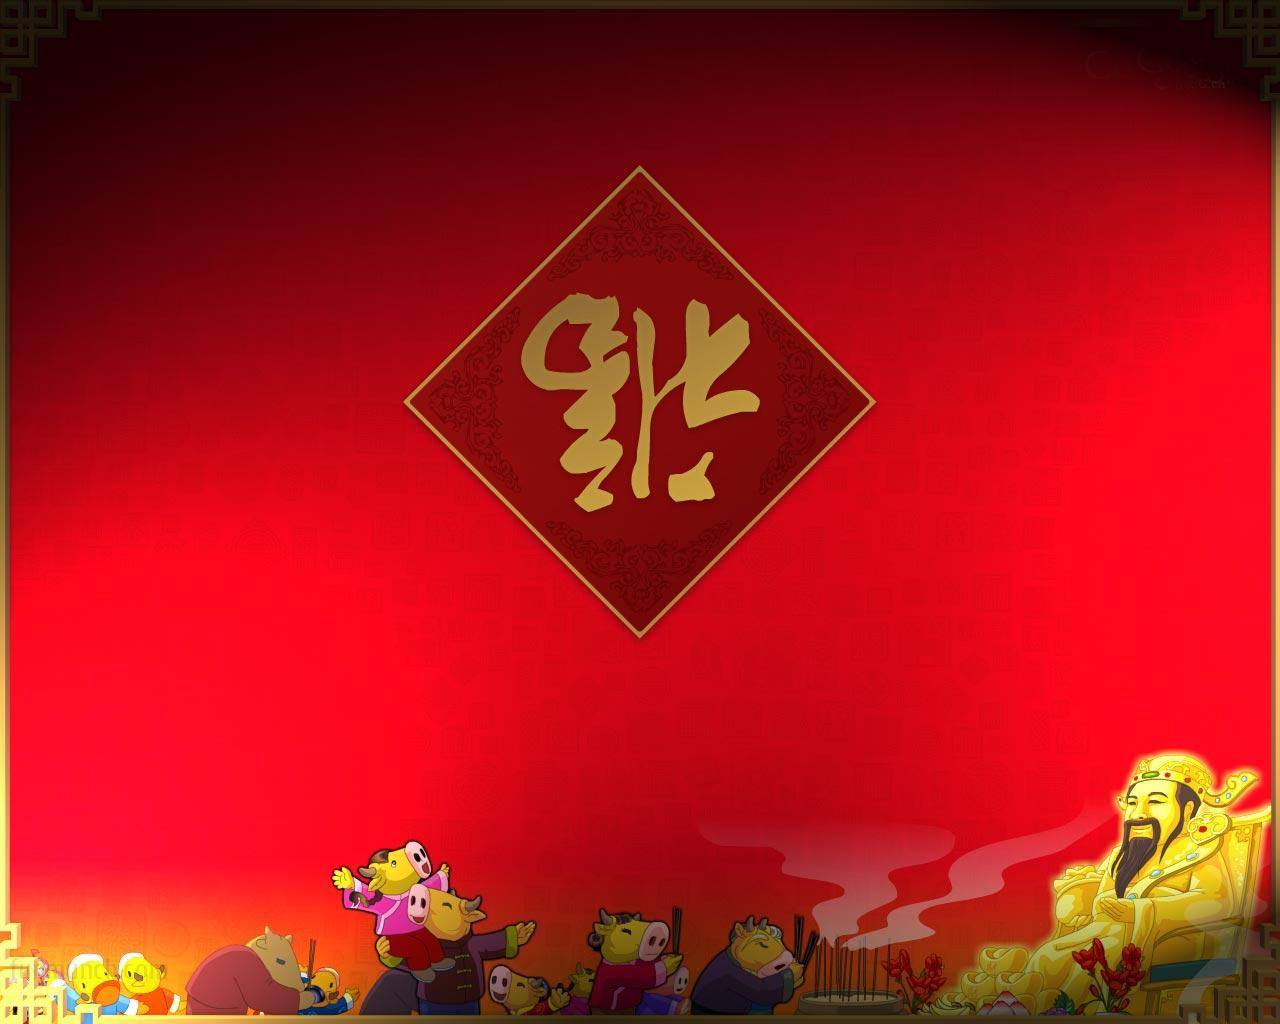 Widescreen Wallpapers: Chinese New Year, (1280x1024, V.72) - BsnSCB Graphics